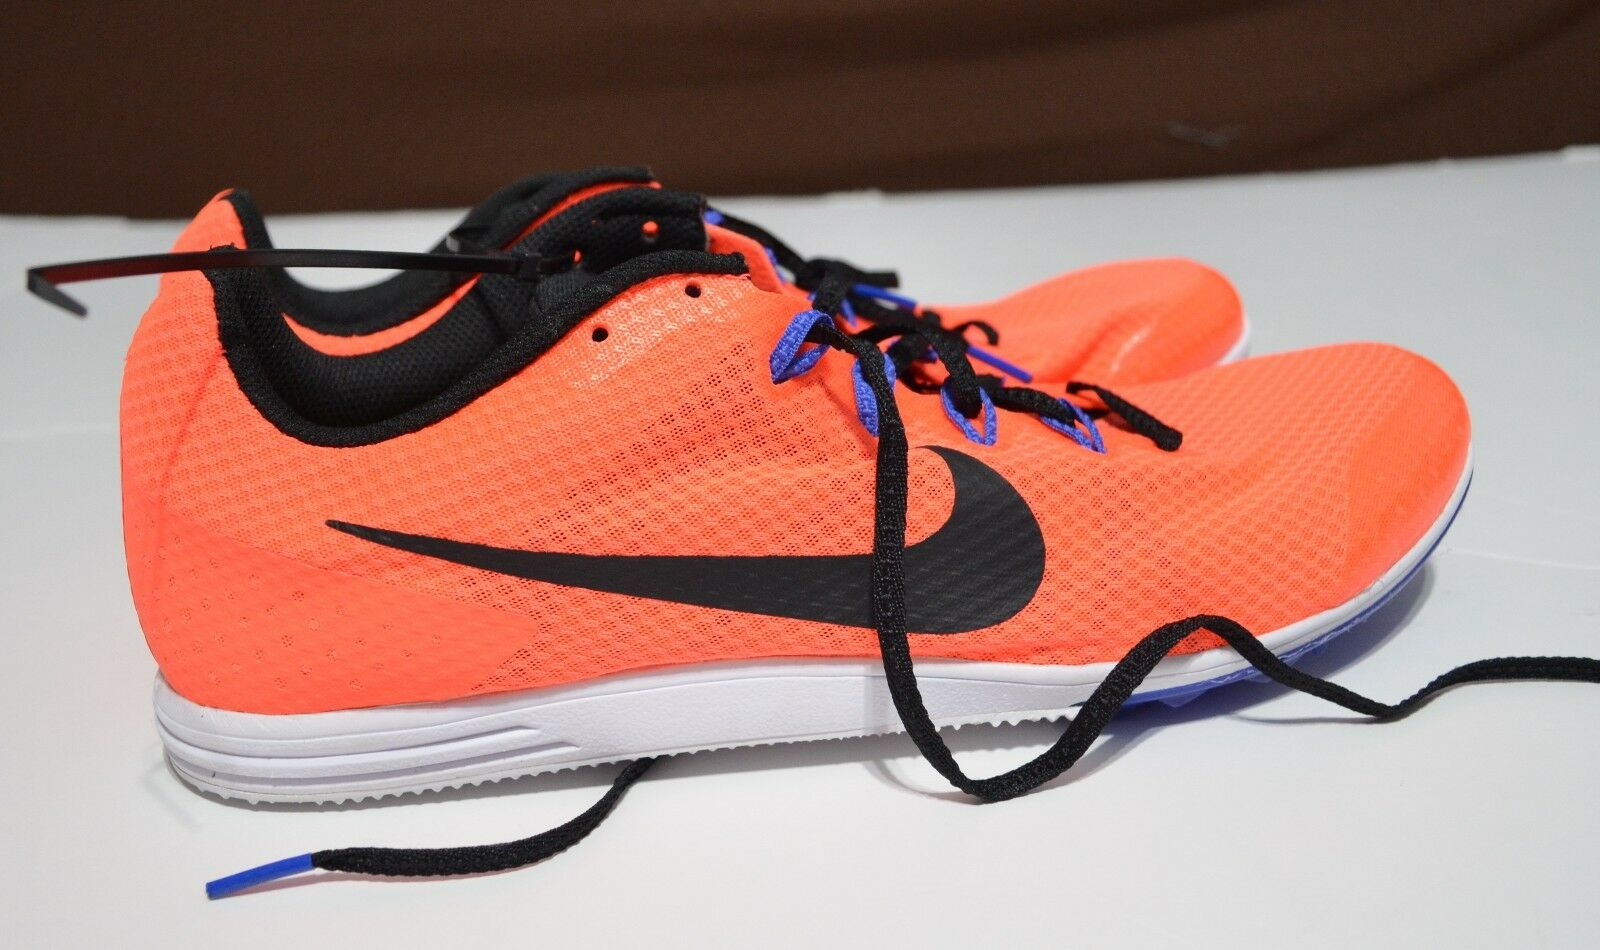 Nike Men's Zoom Rival D 9 Track and Field Neon Shoes Comfortable Cheap and beautiful fashion